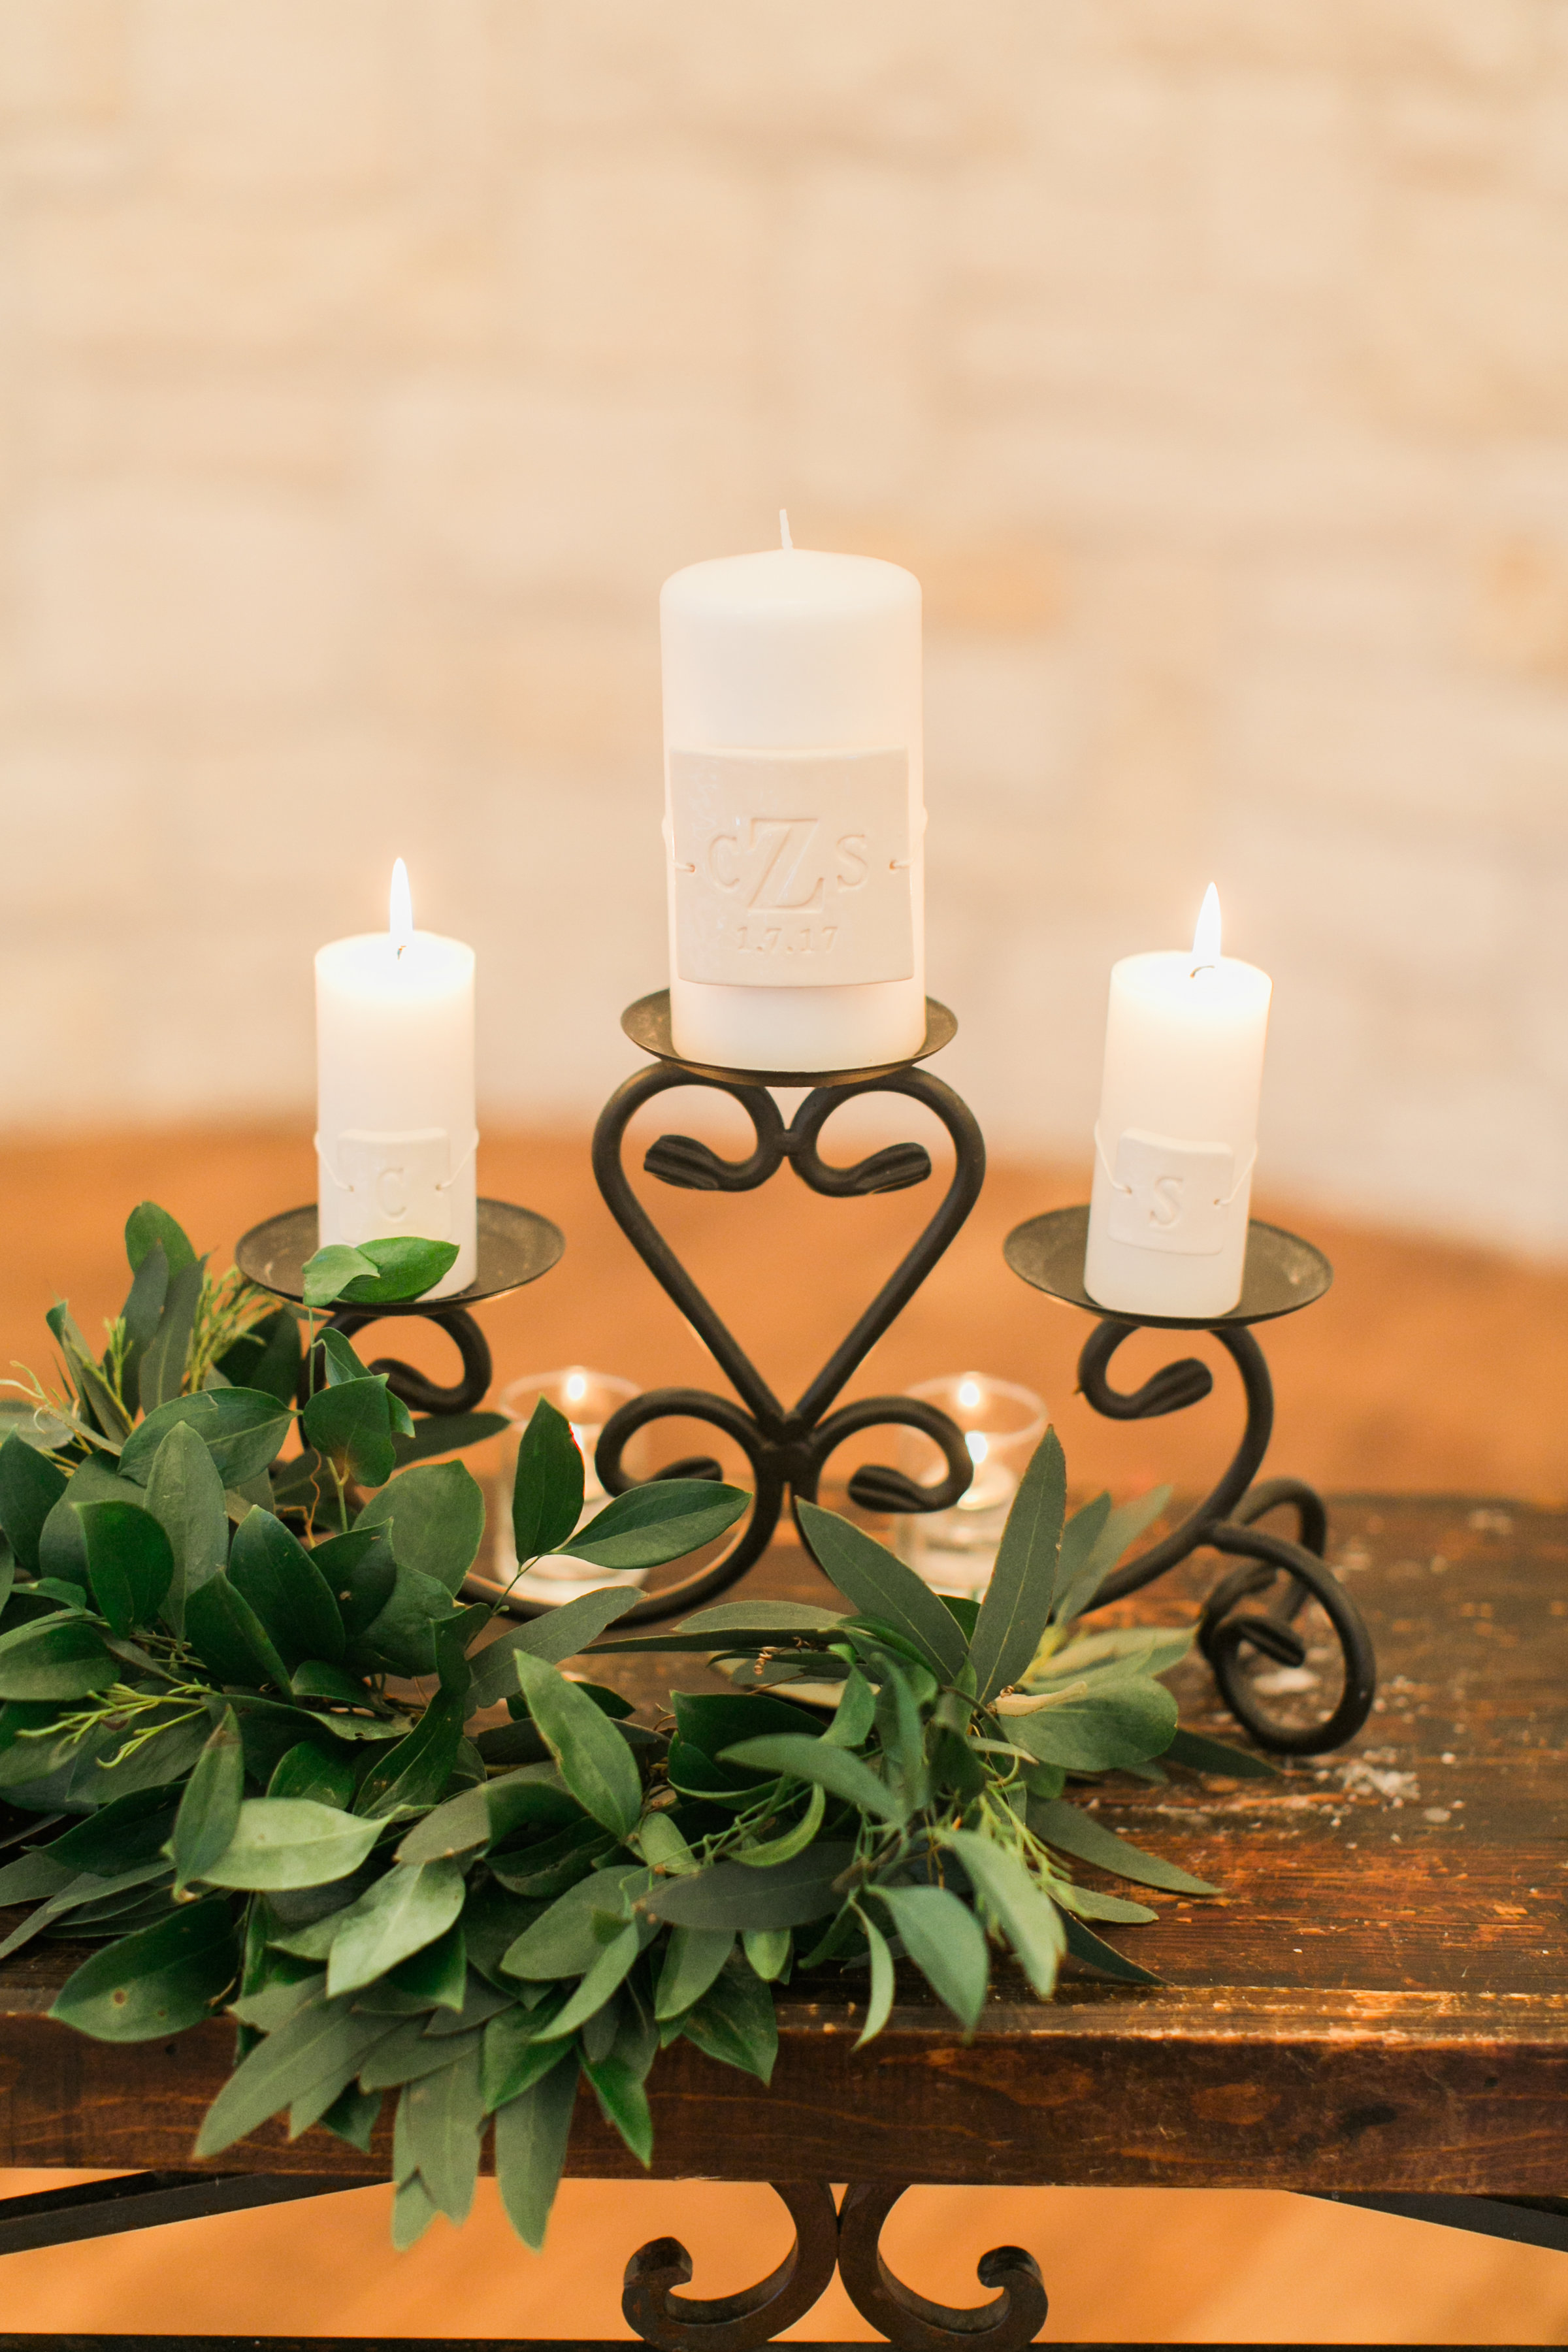 greenery on unity candle maxit flower design